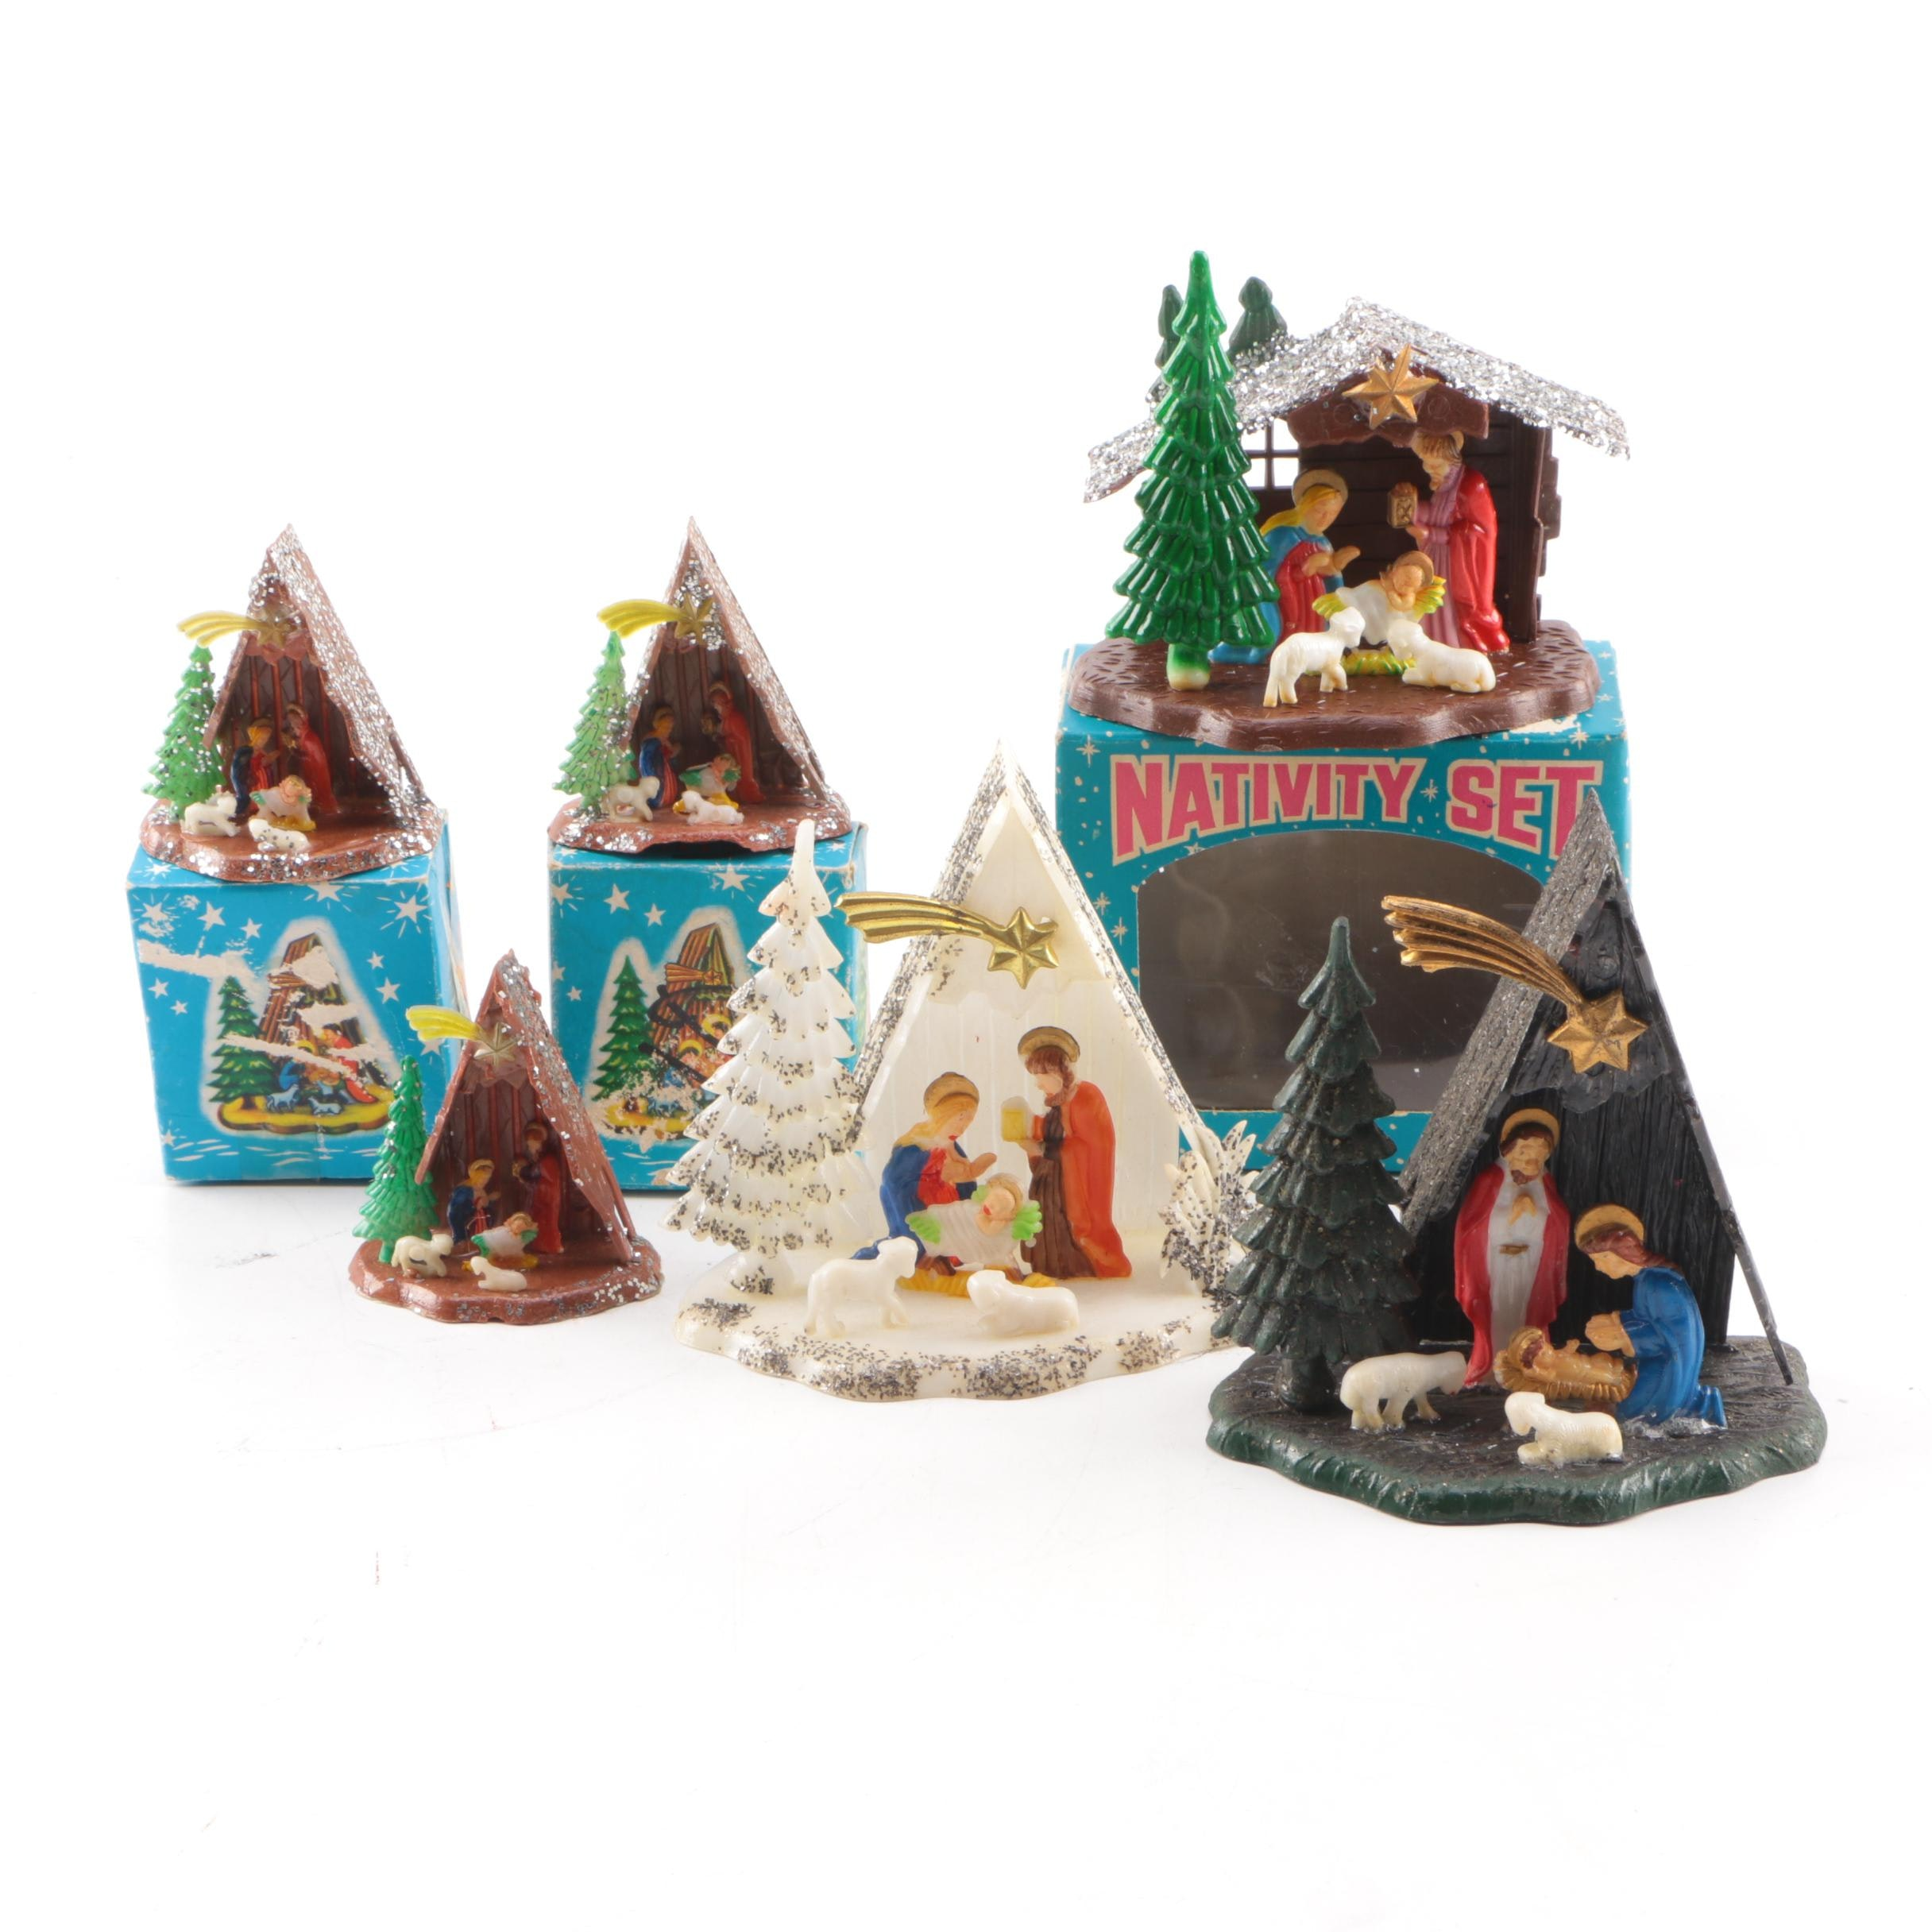 Collection of Nativity Scenes